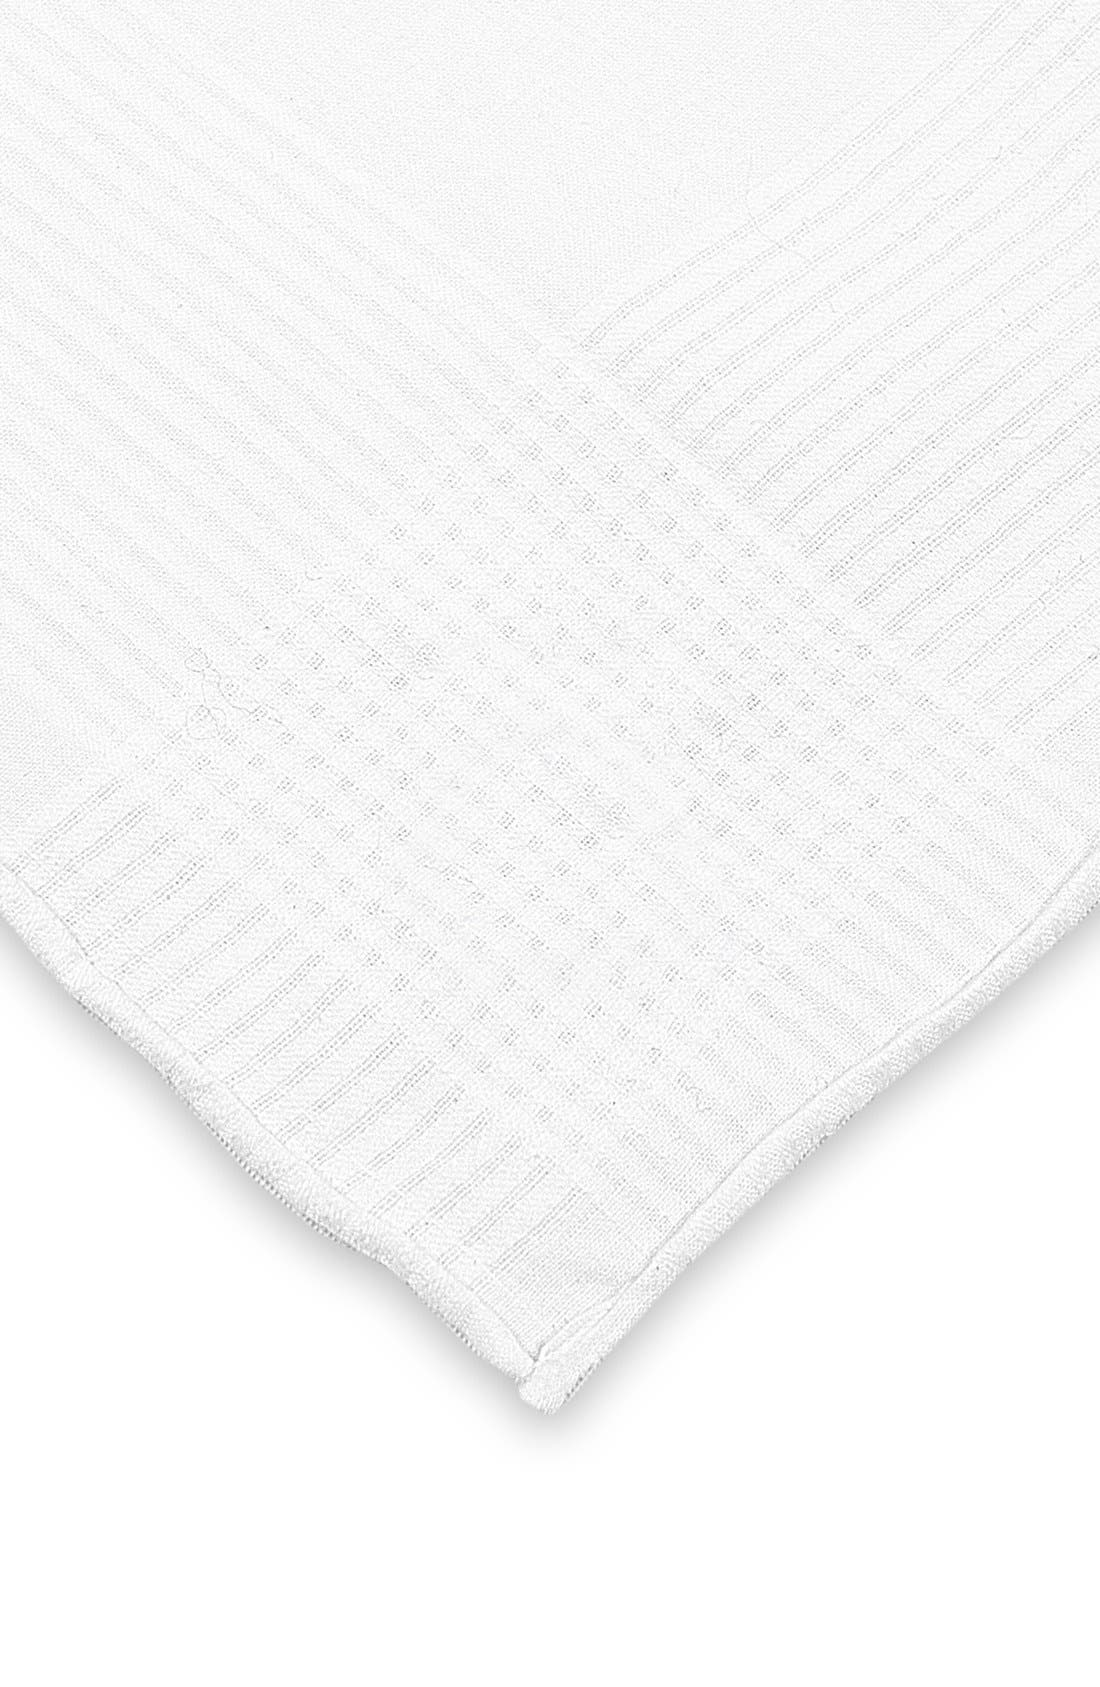 Personalized Hand-Rolled Handkerchiefs,                             Main thumbnail 1, color,                             100